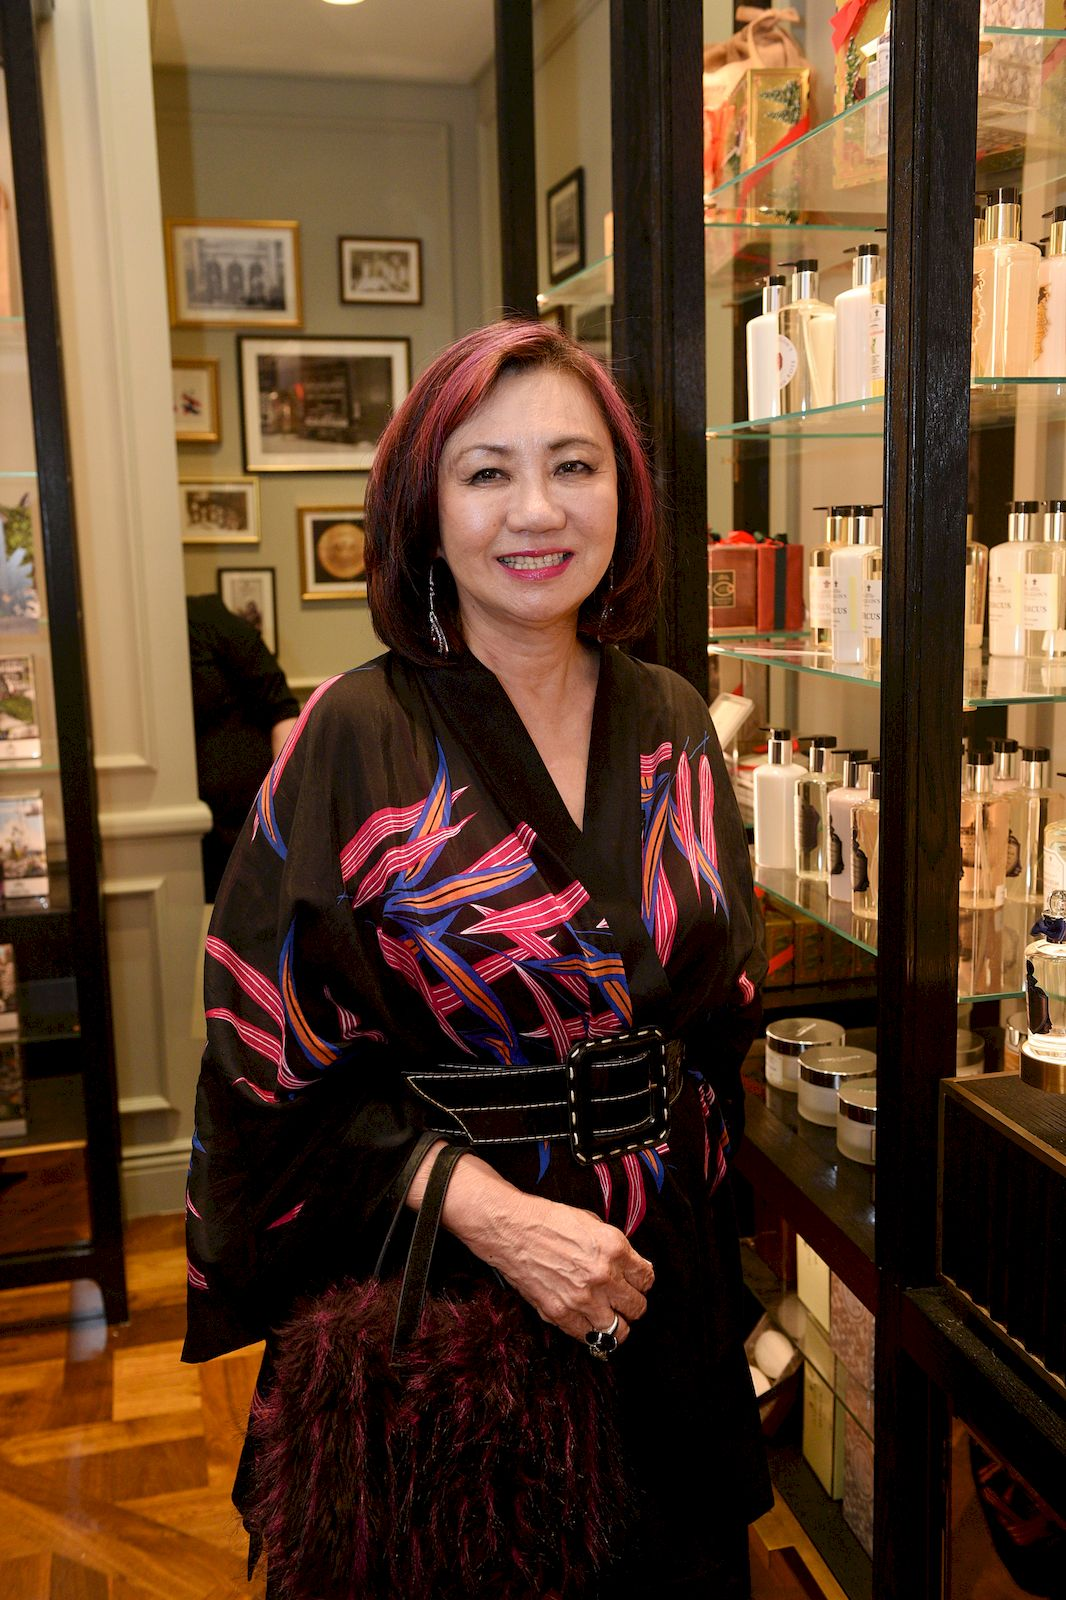 How Renee Tan's daily routine has changed amid the COVID-19 pandemic